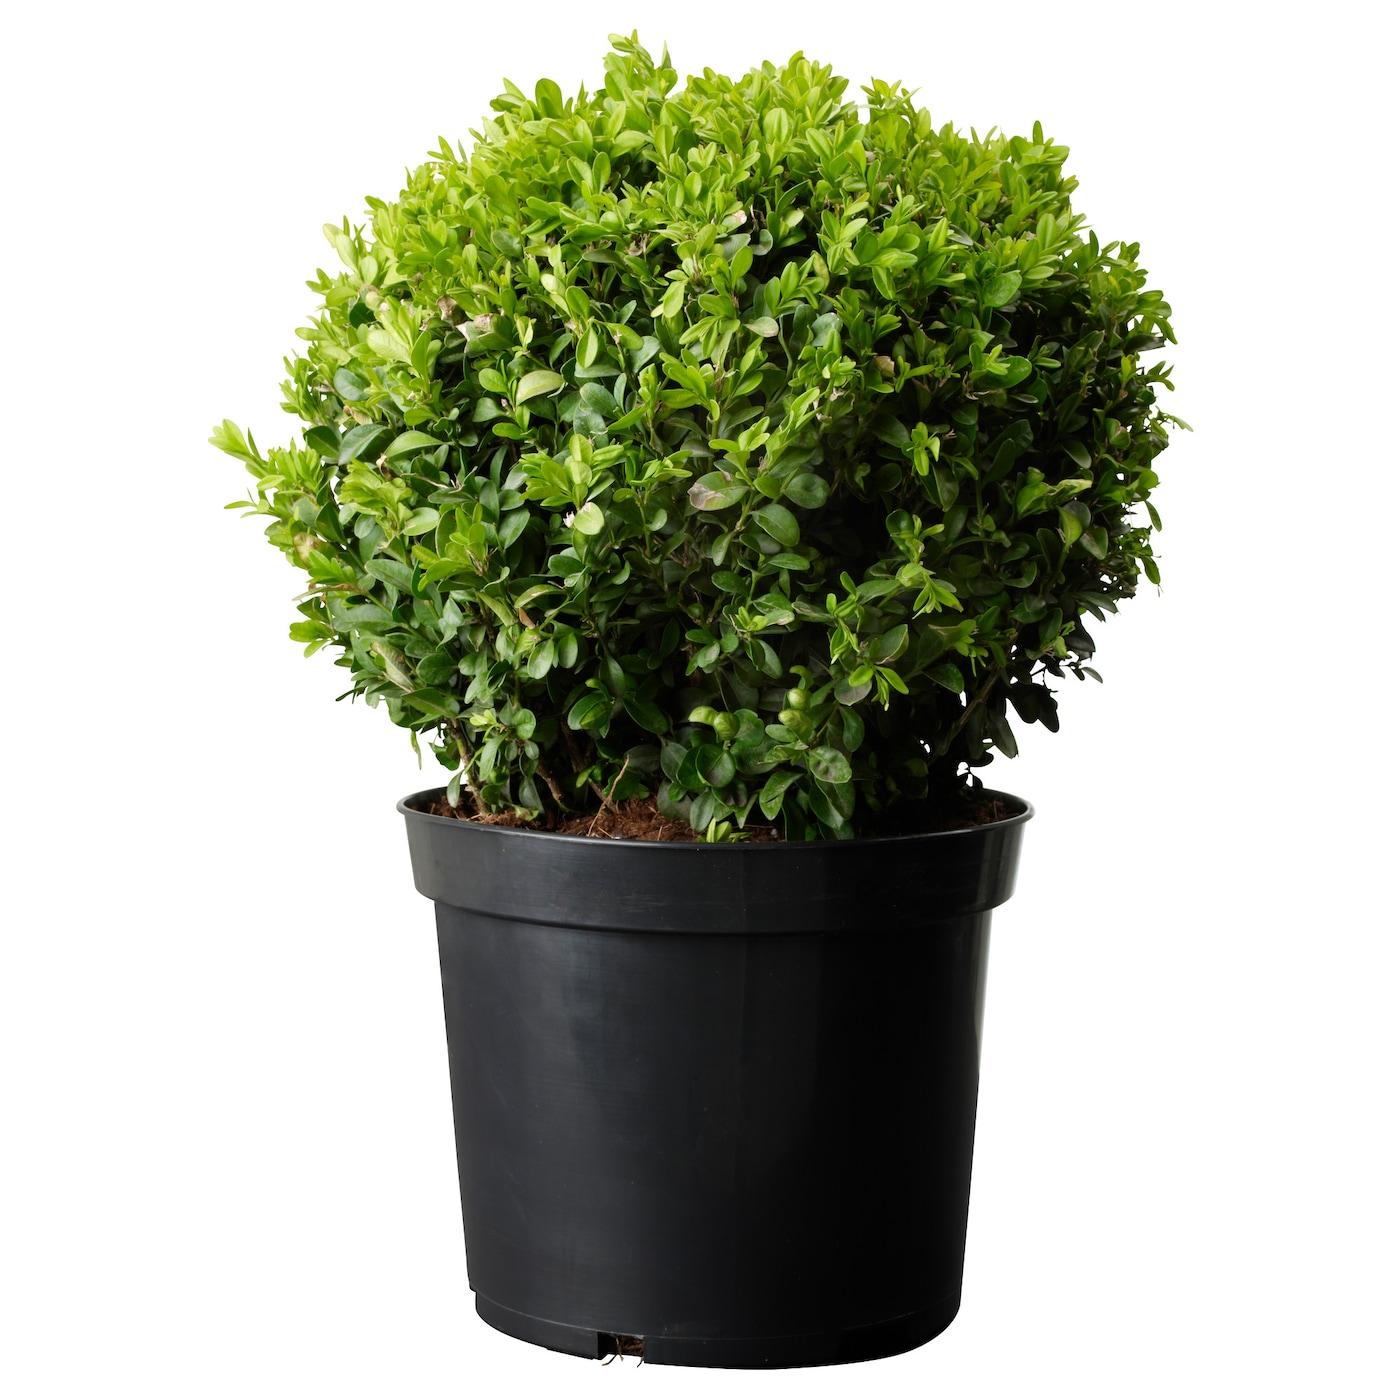 Buxus sempervirens potted plant box ball 24 cm ikea for Ikea plantes